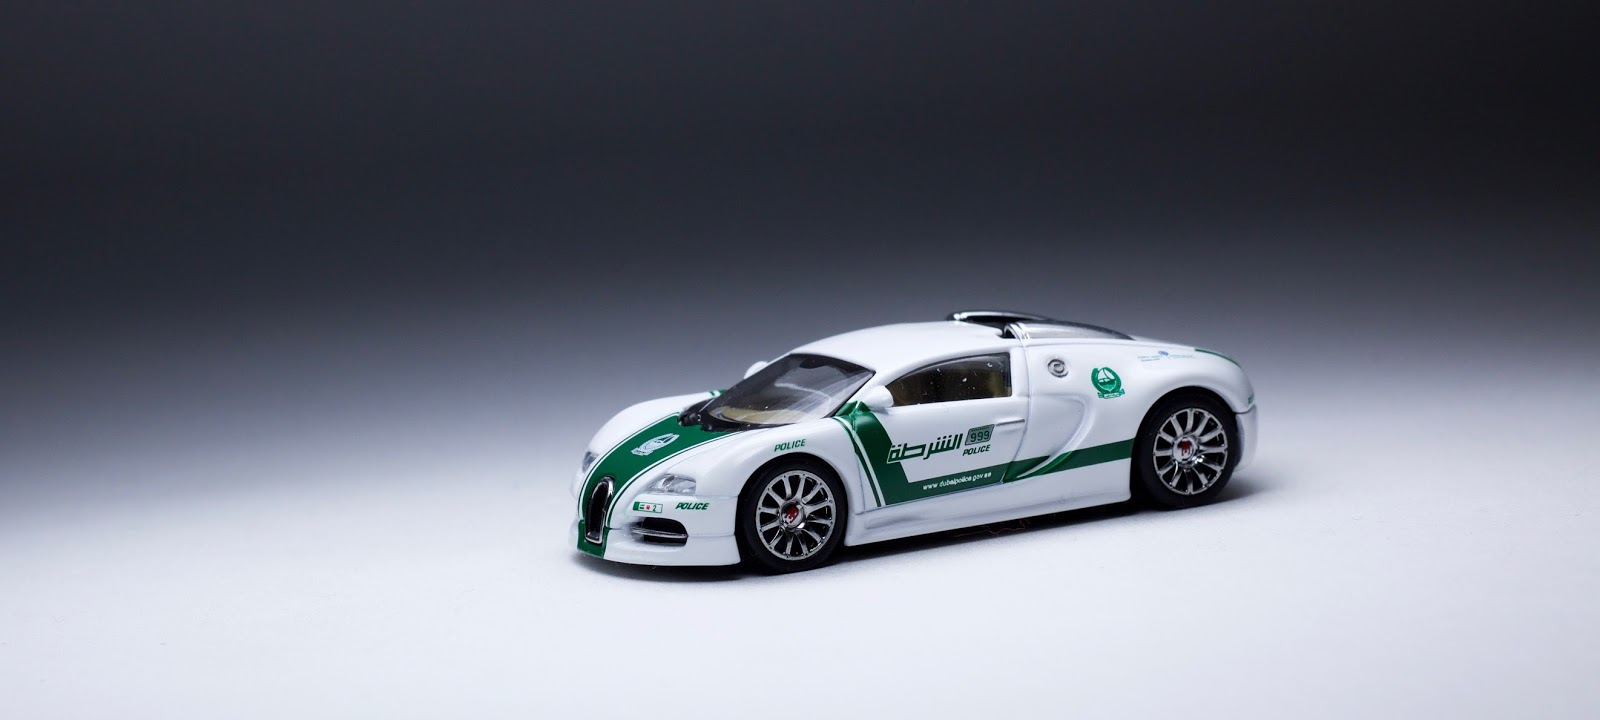 the auto art bugatti veyron dubai police car is upper echelon diecast the. Black Bedroom Furniture Sets. Home Design Ideas